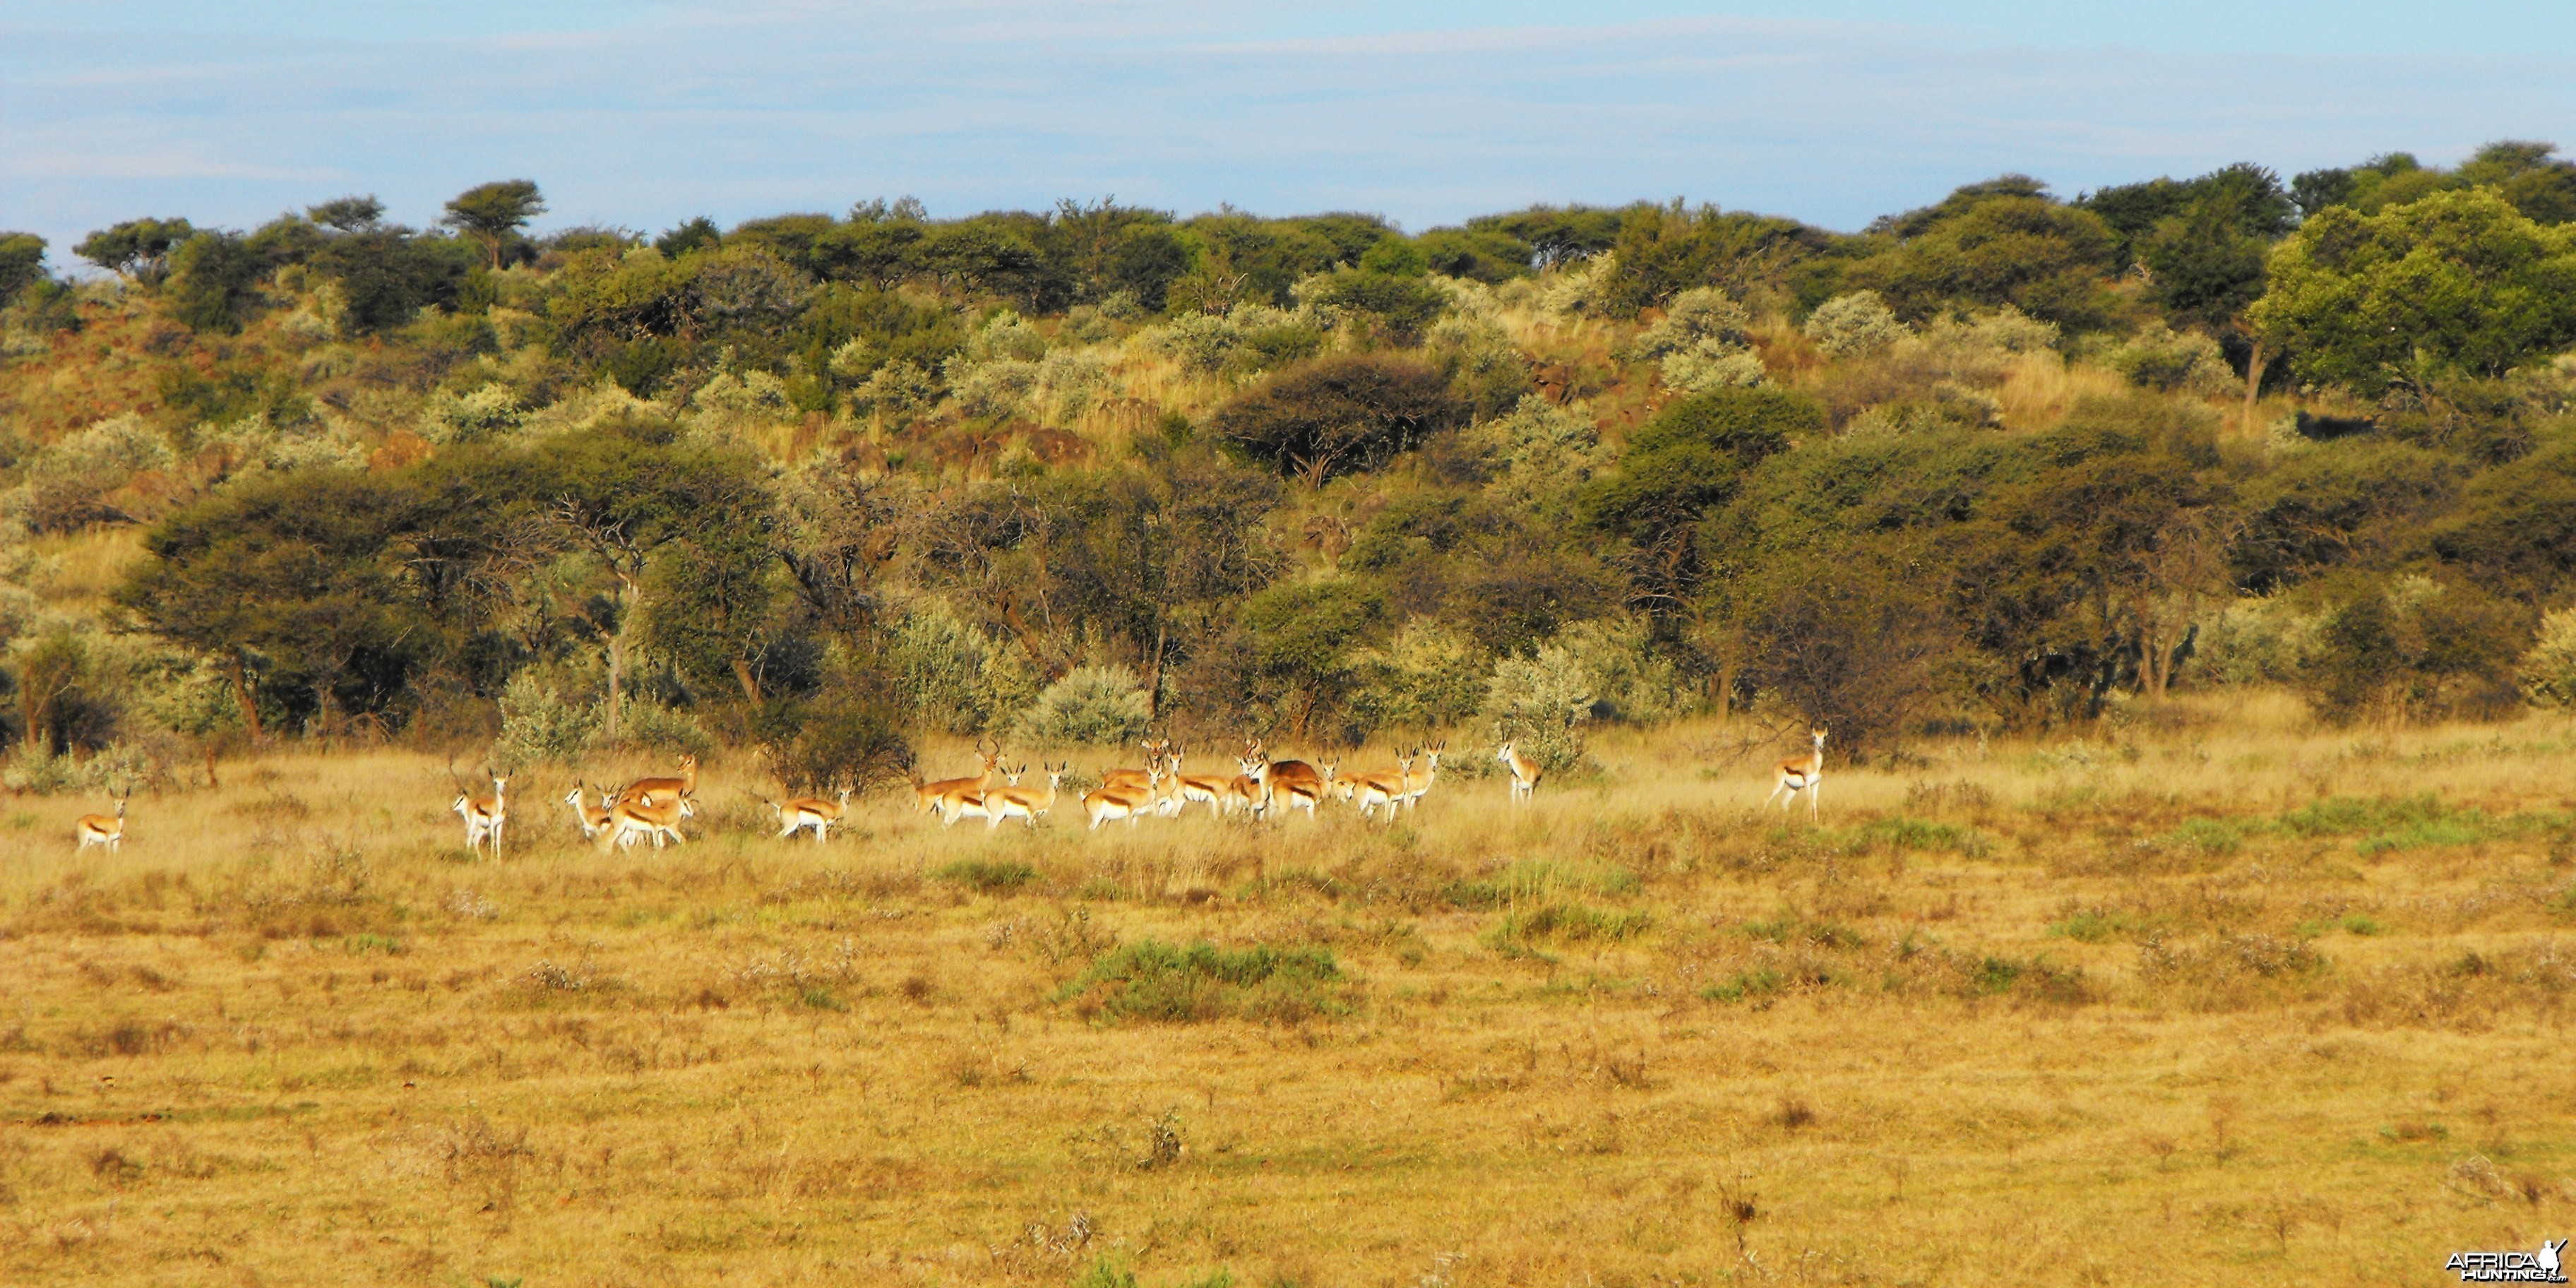 Springbok, and a few immature Impala rams